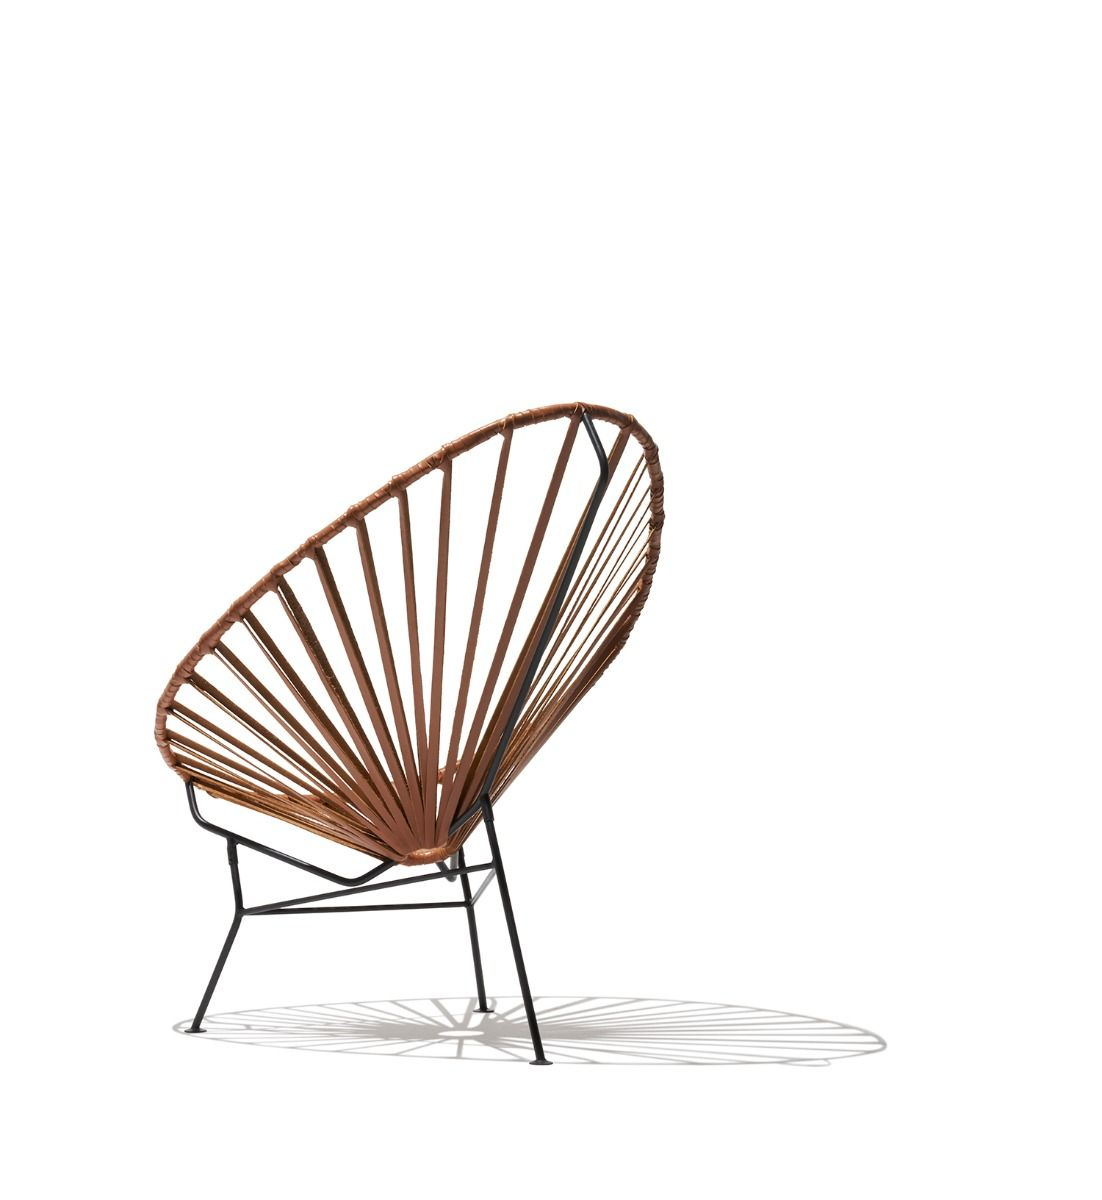 Outstanding Acapulco Lounge Chair Leather Industry West Mexa Caraccident5 Cool Chair Designs And Ideas Caraccident5Info